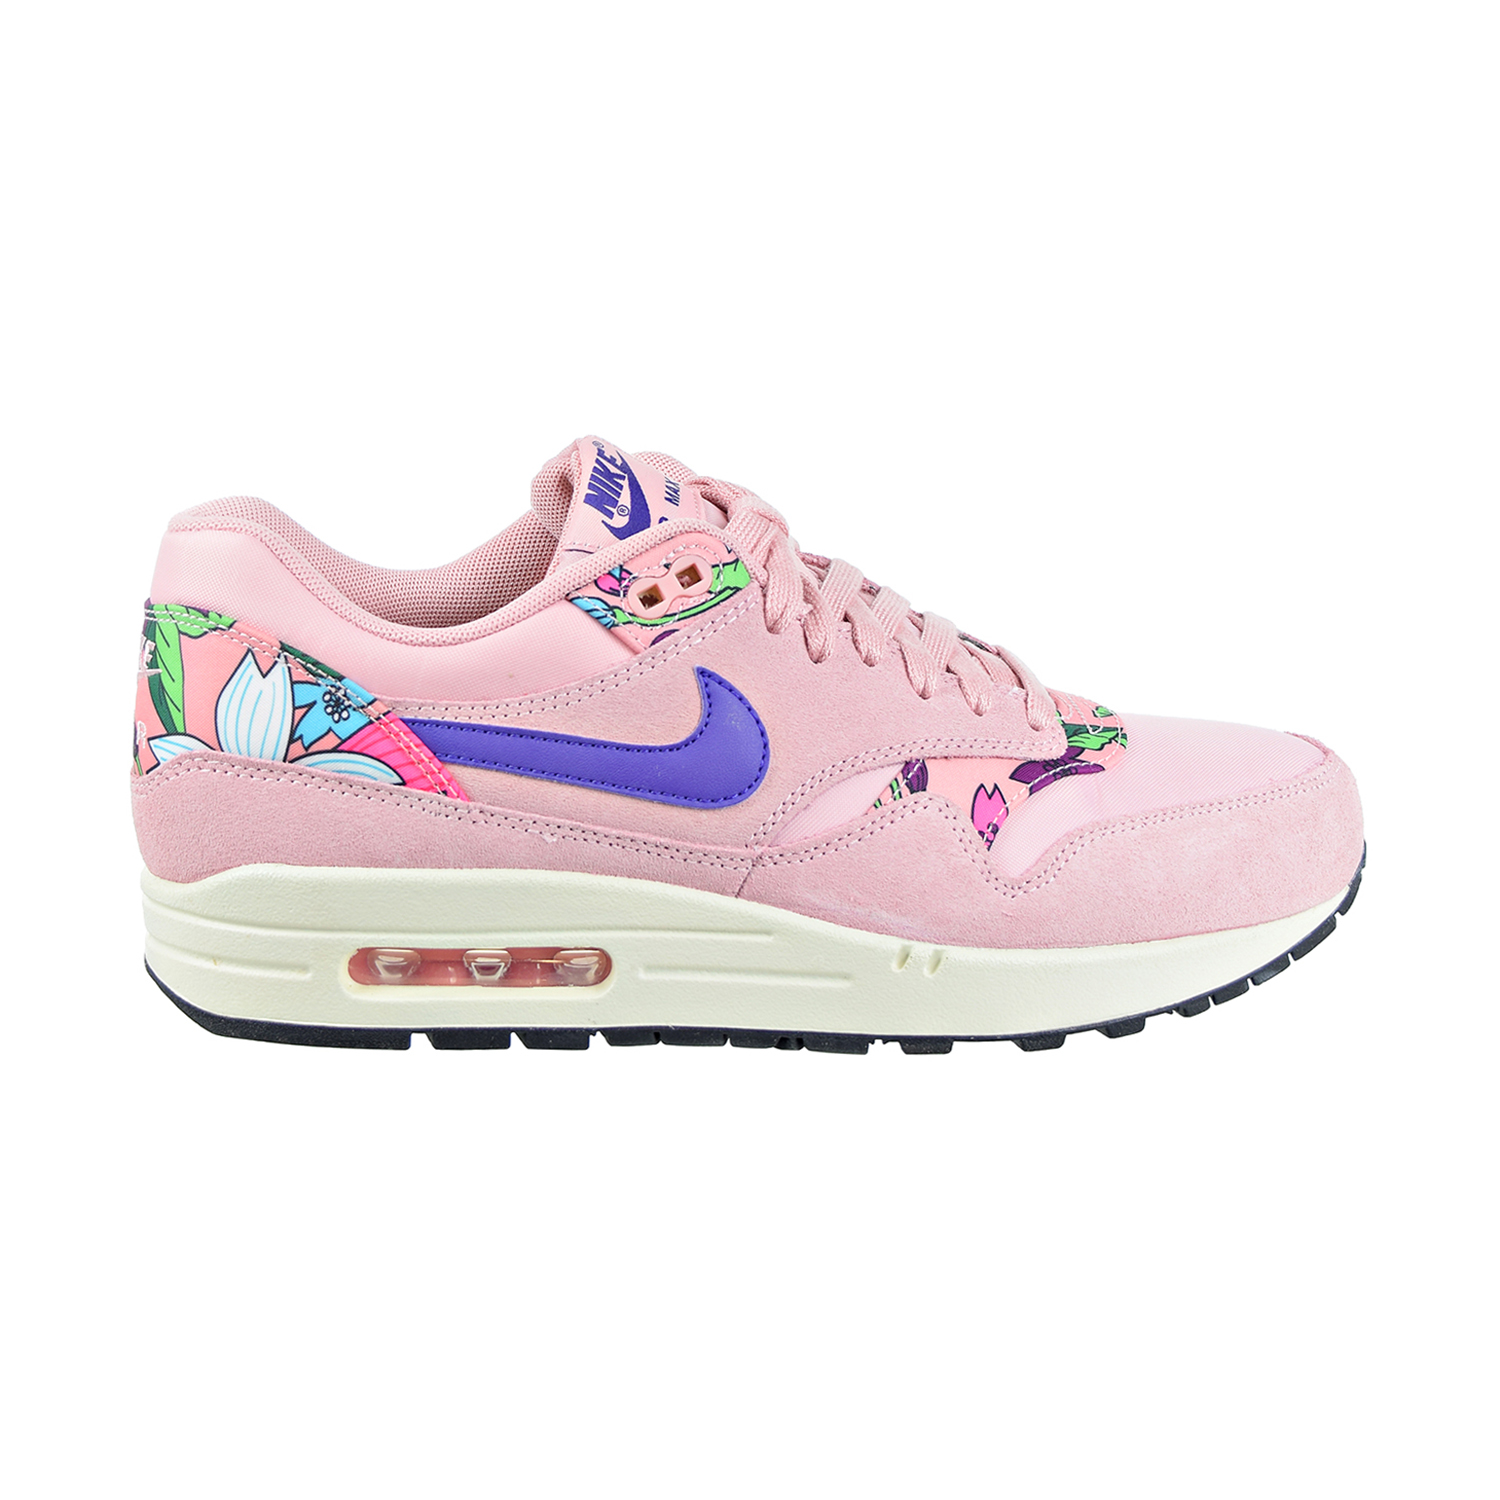 Details about Nike Air Max 1 Print 'Aloha' Women's Shoes Pink Glaze Varsity Purple 528898 601